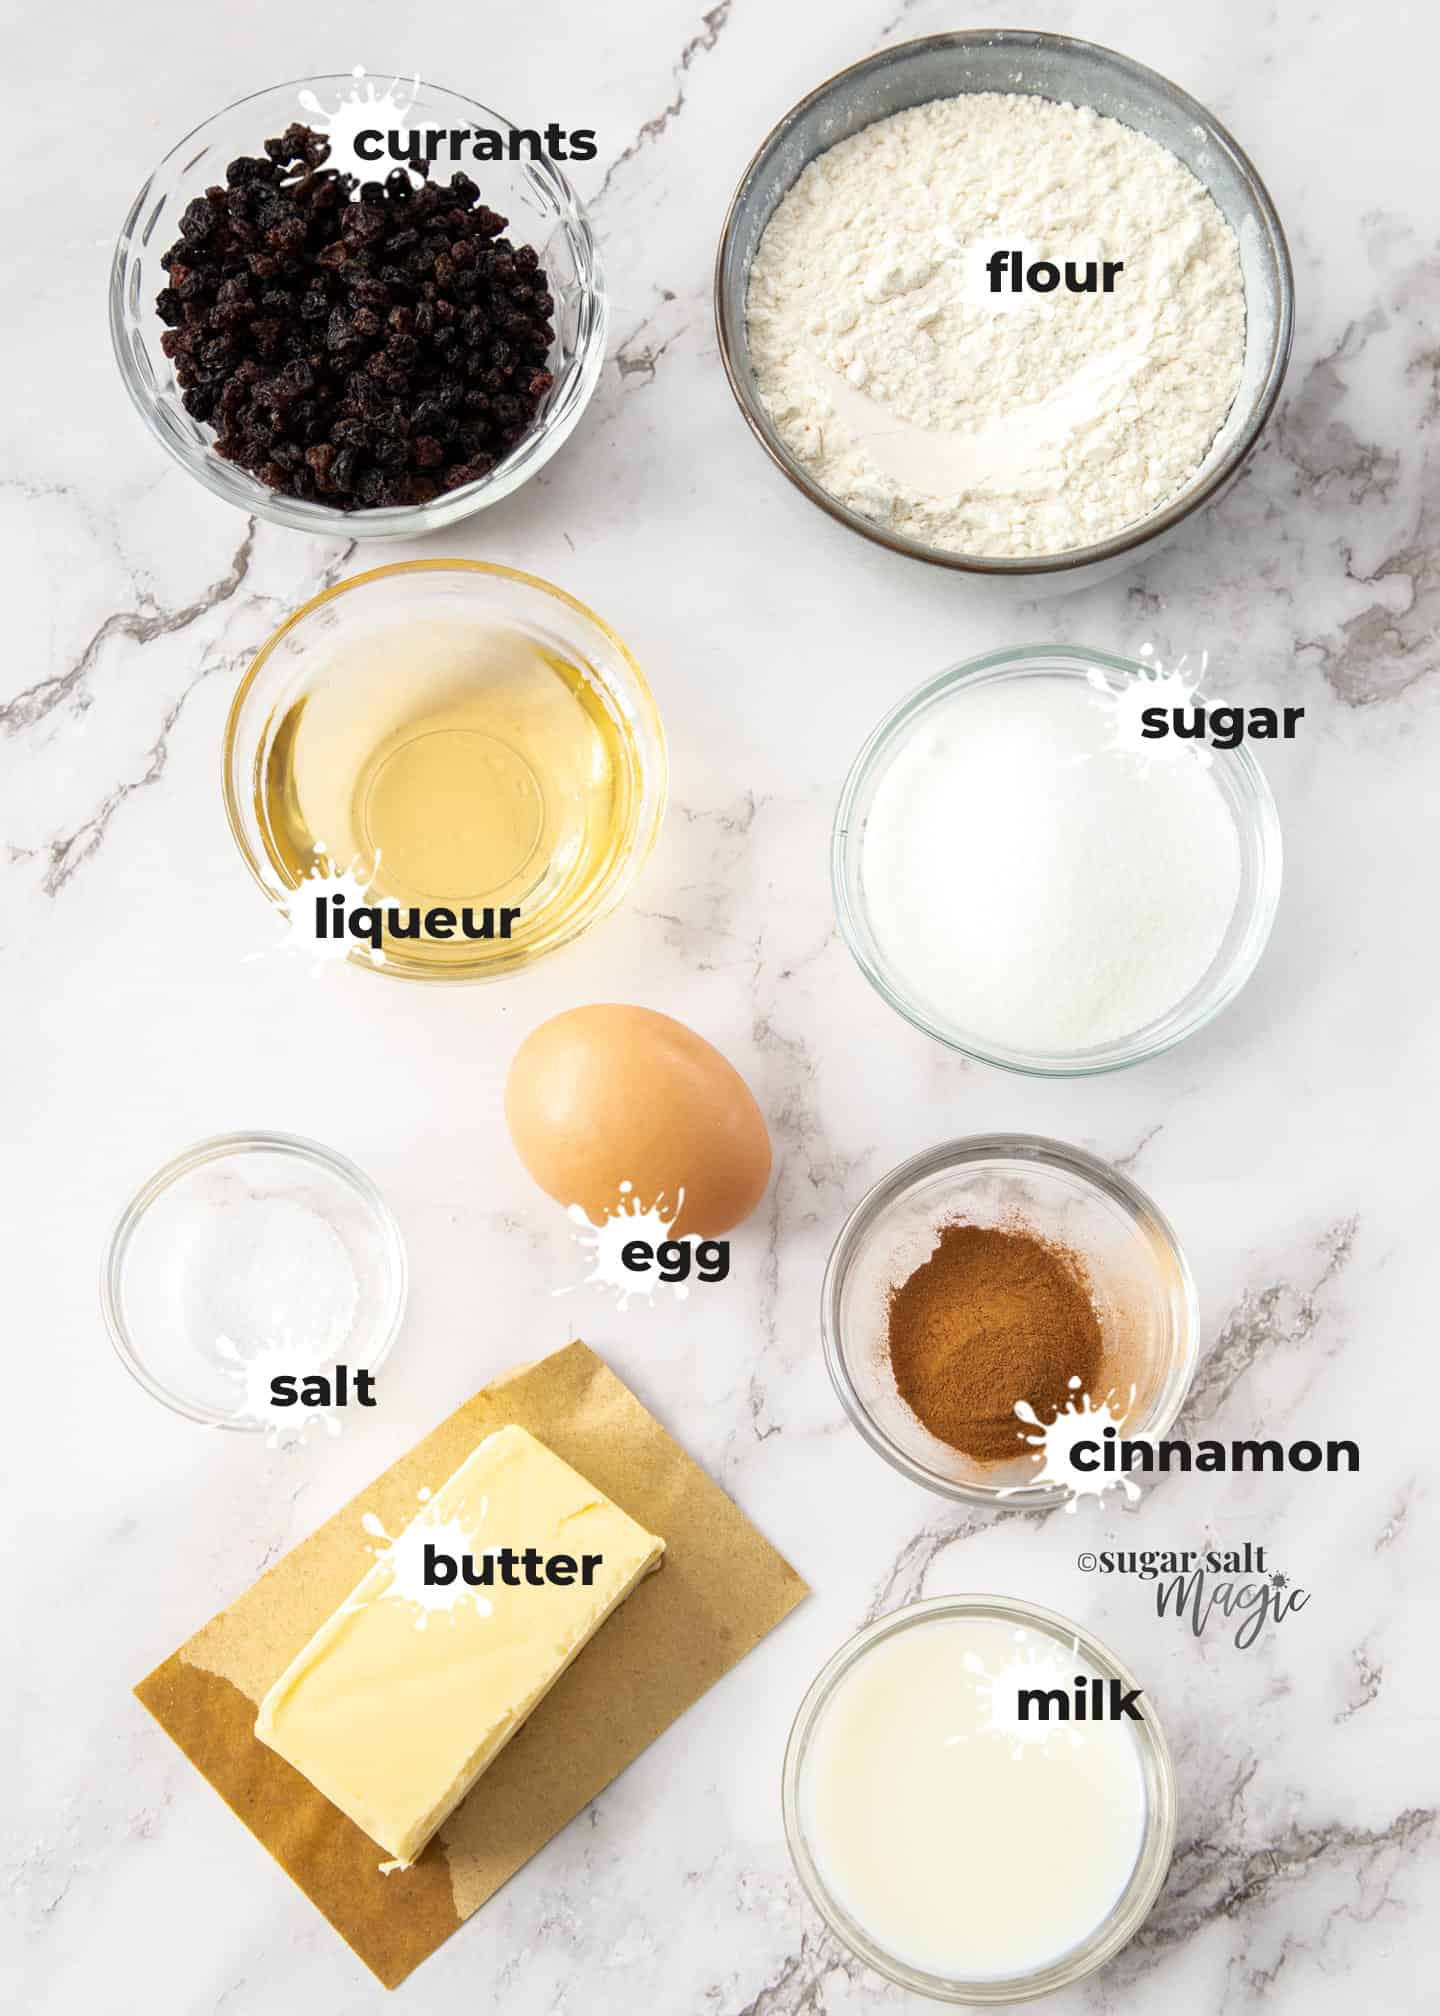 Ingredients set out in glass bowls on a marble benchtop.